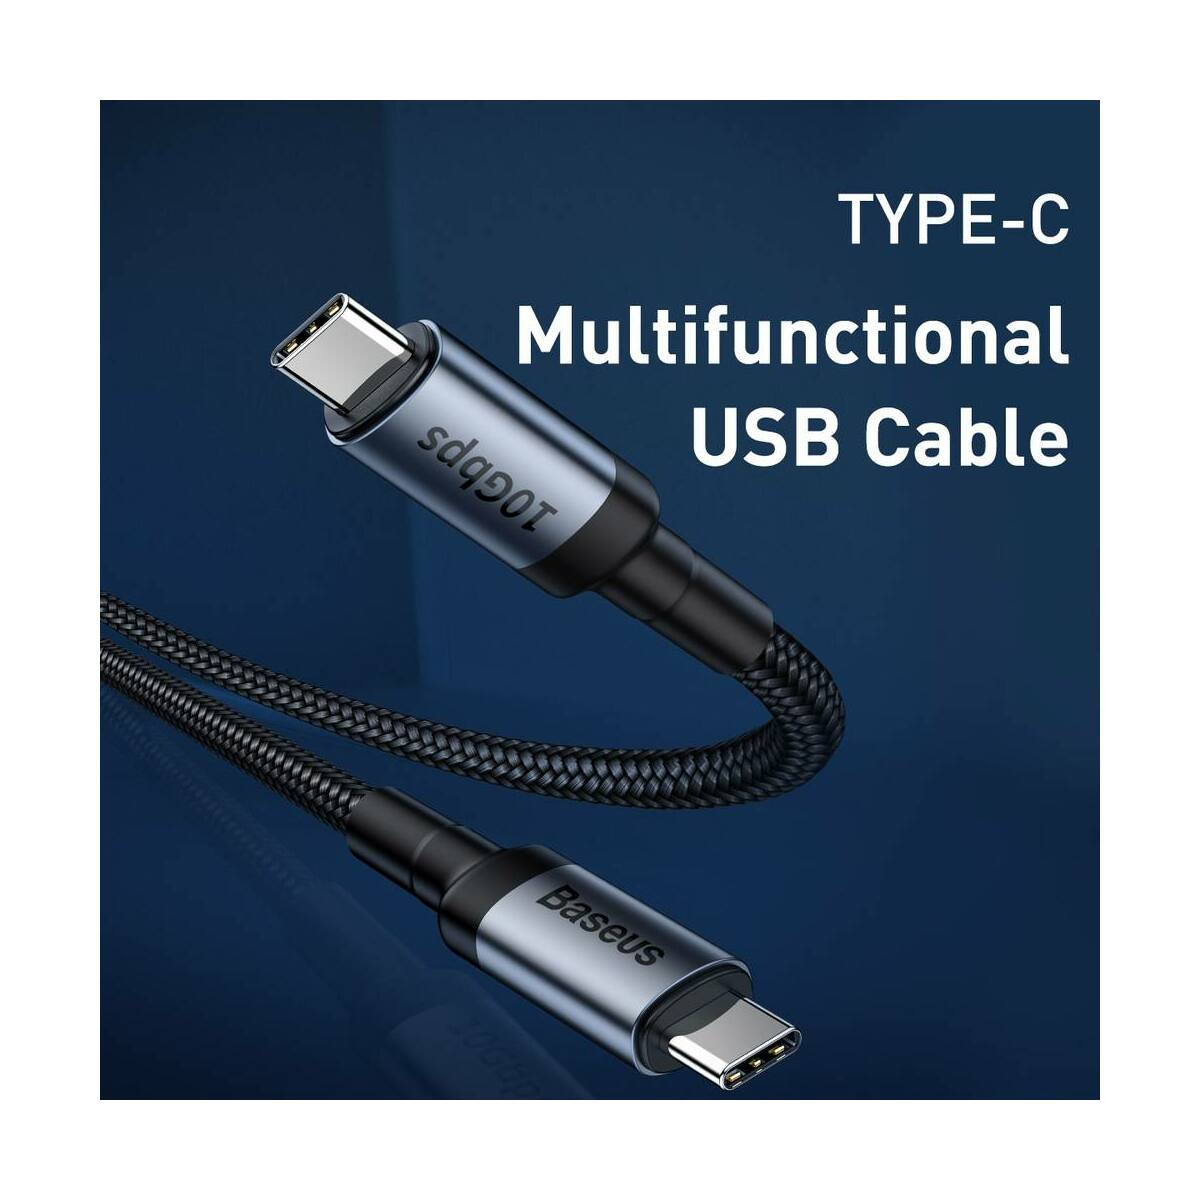 Baseus Type-C Cafule PD3.1, max 60W(20V/3A) flash charge cable 1m, szürke/fekete (CATKLF-RG1)